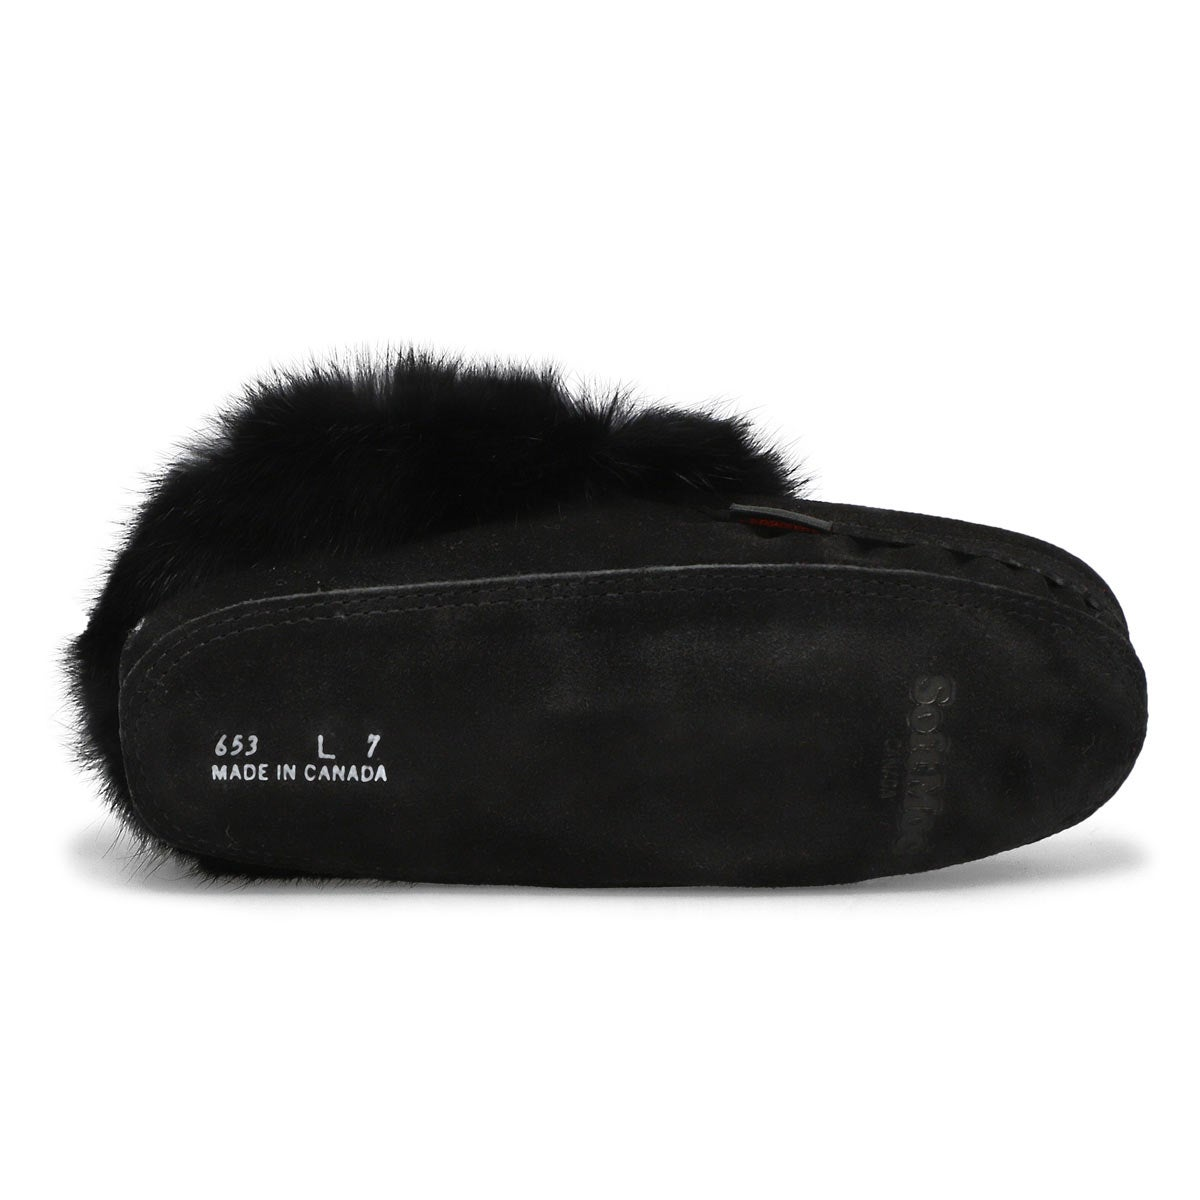 Lds black rabbit fur moccasin